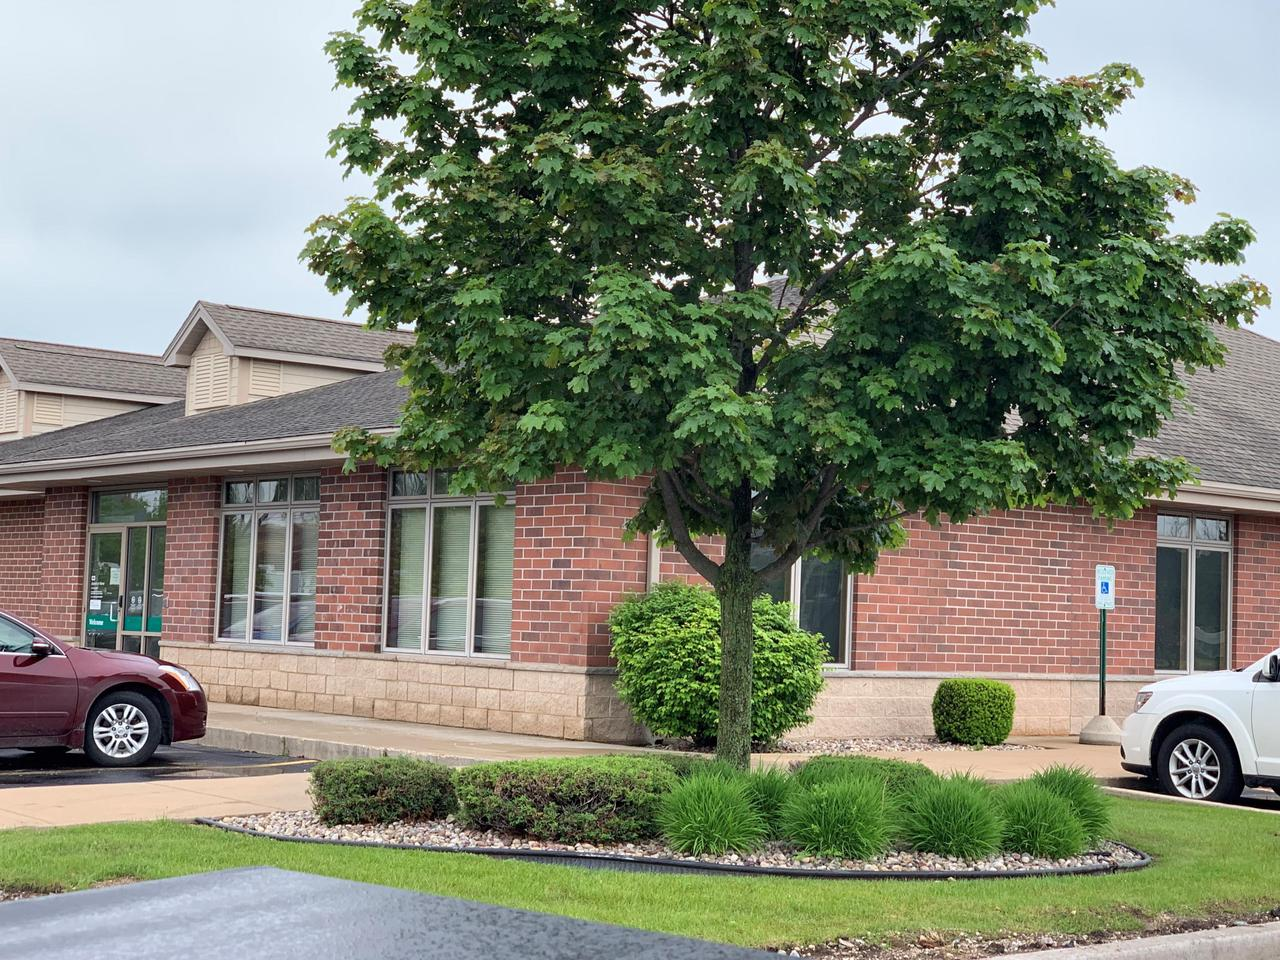 Prime location of almost 4200 sq ft of former Medical office space that was occupied by Aurora. Perfect opportunity for professional or medical groups.